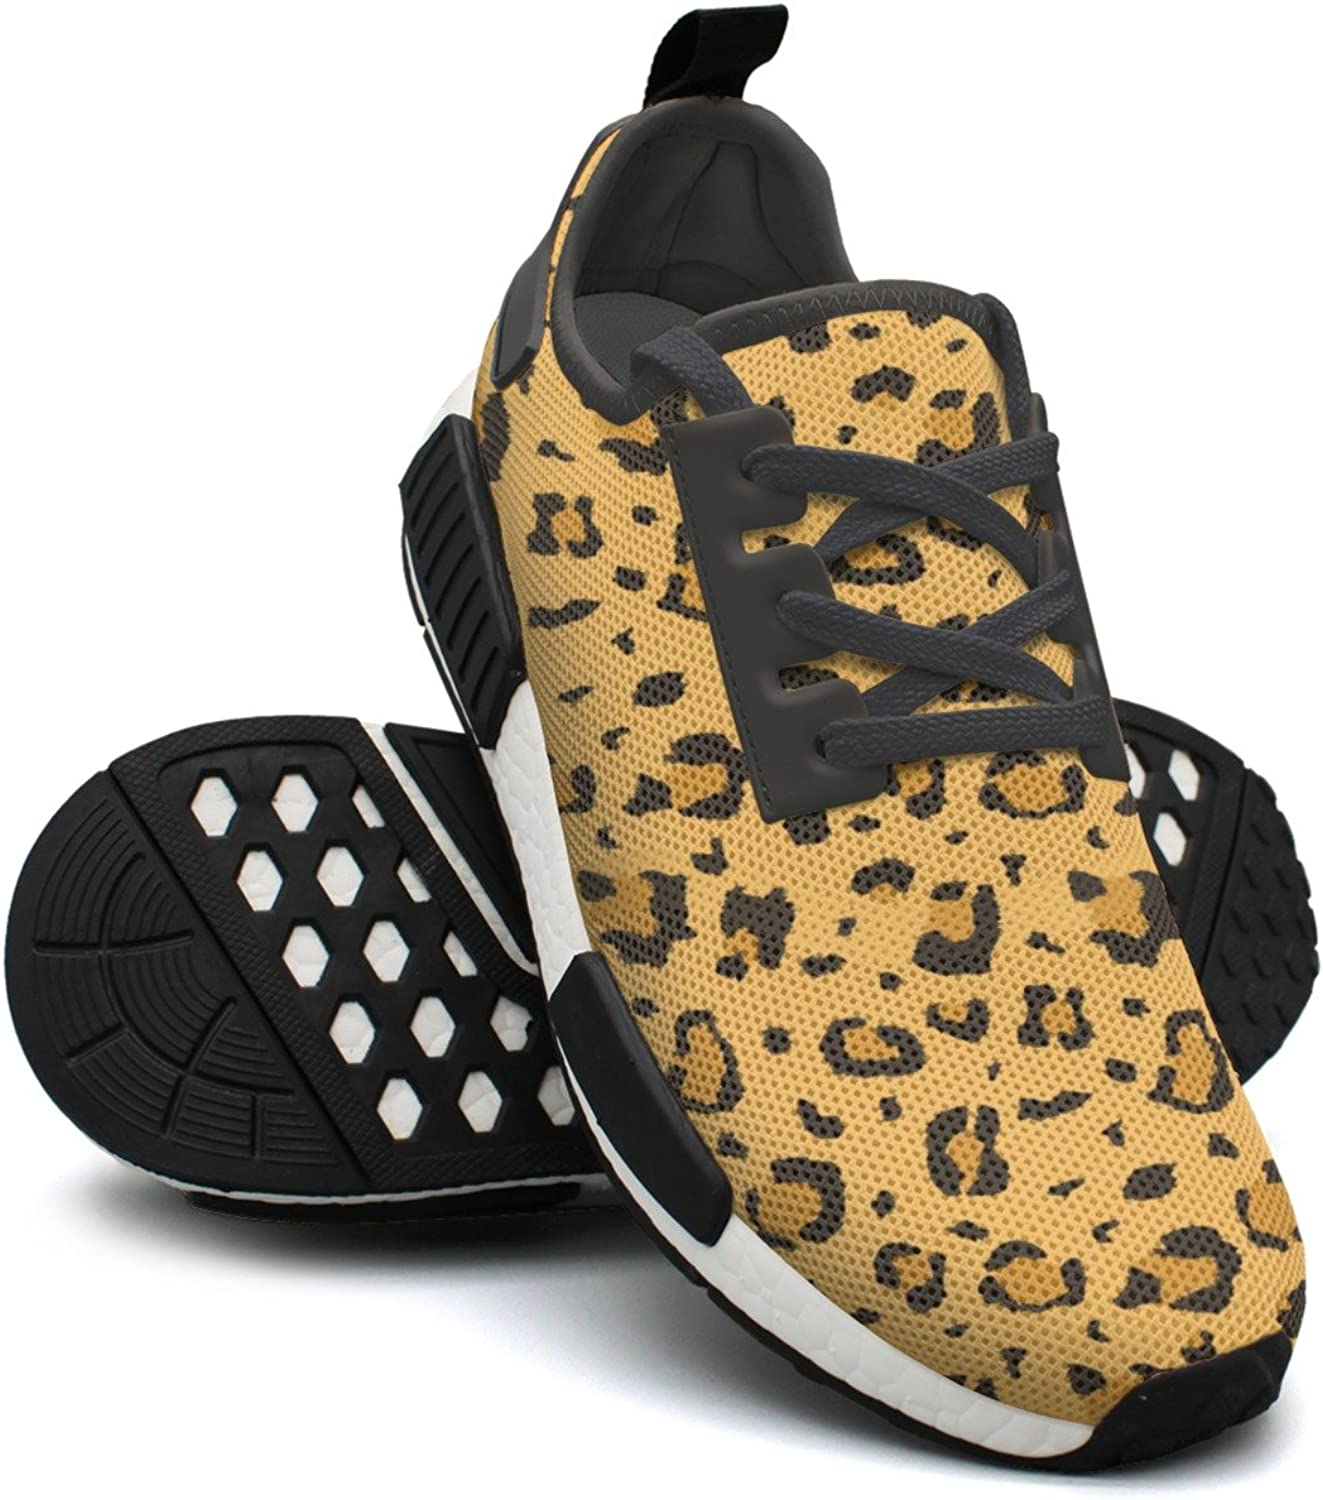 African Cheetah Leopard Fur Jogging shoes For Women Nmd Sports Tennis shoes